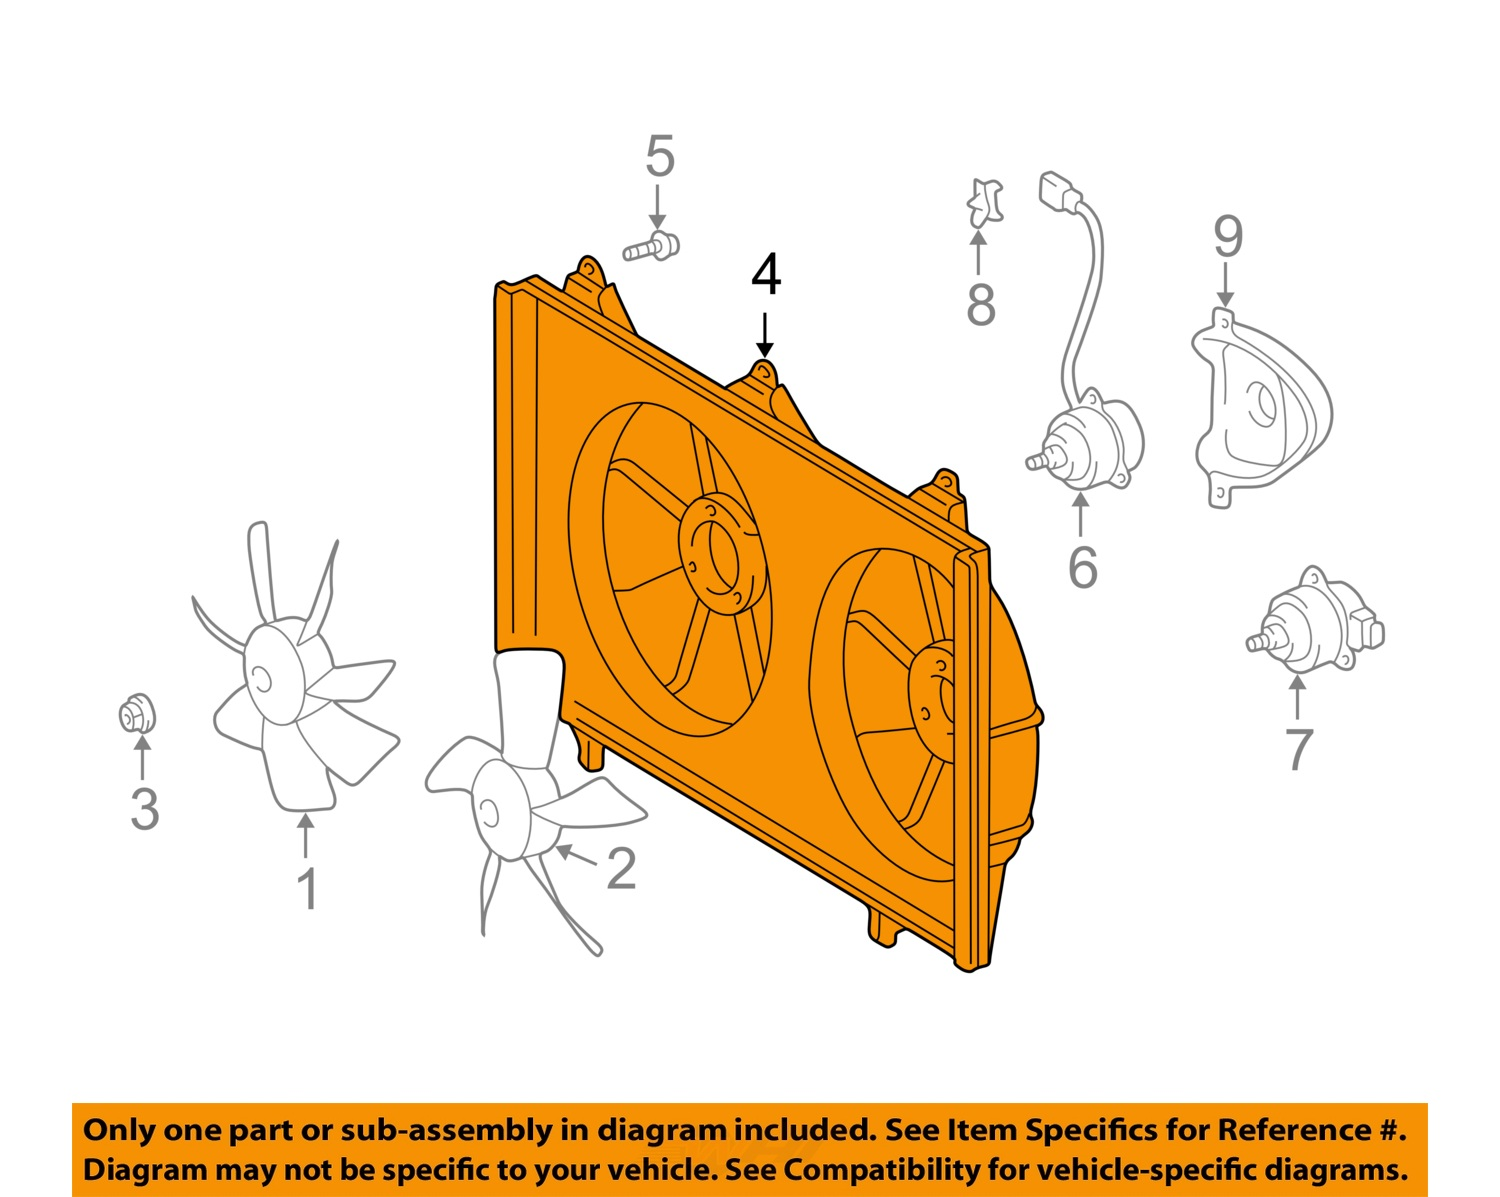 Toyota Camry Cooling Diagram 95 Get Free Image About Wiring Diagram